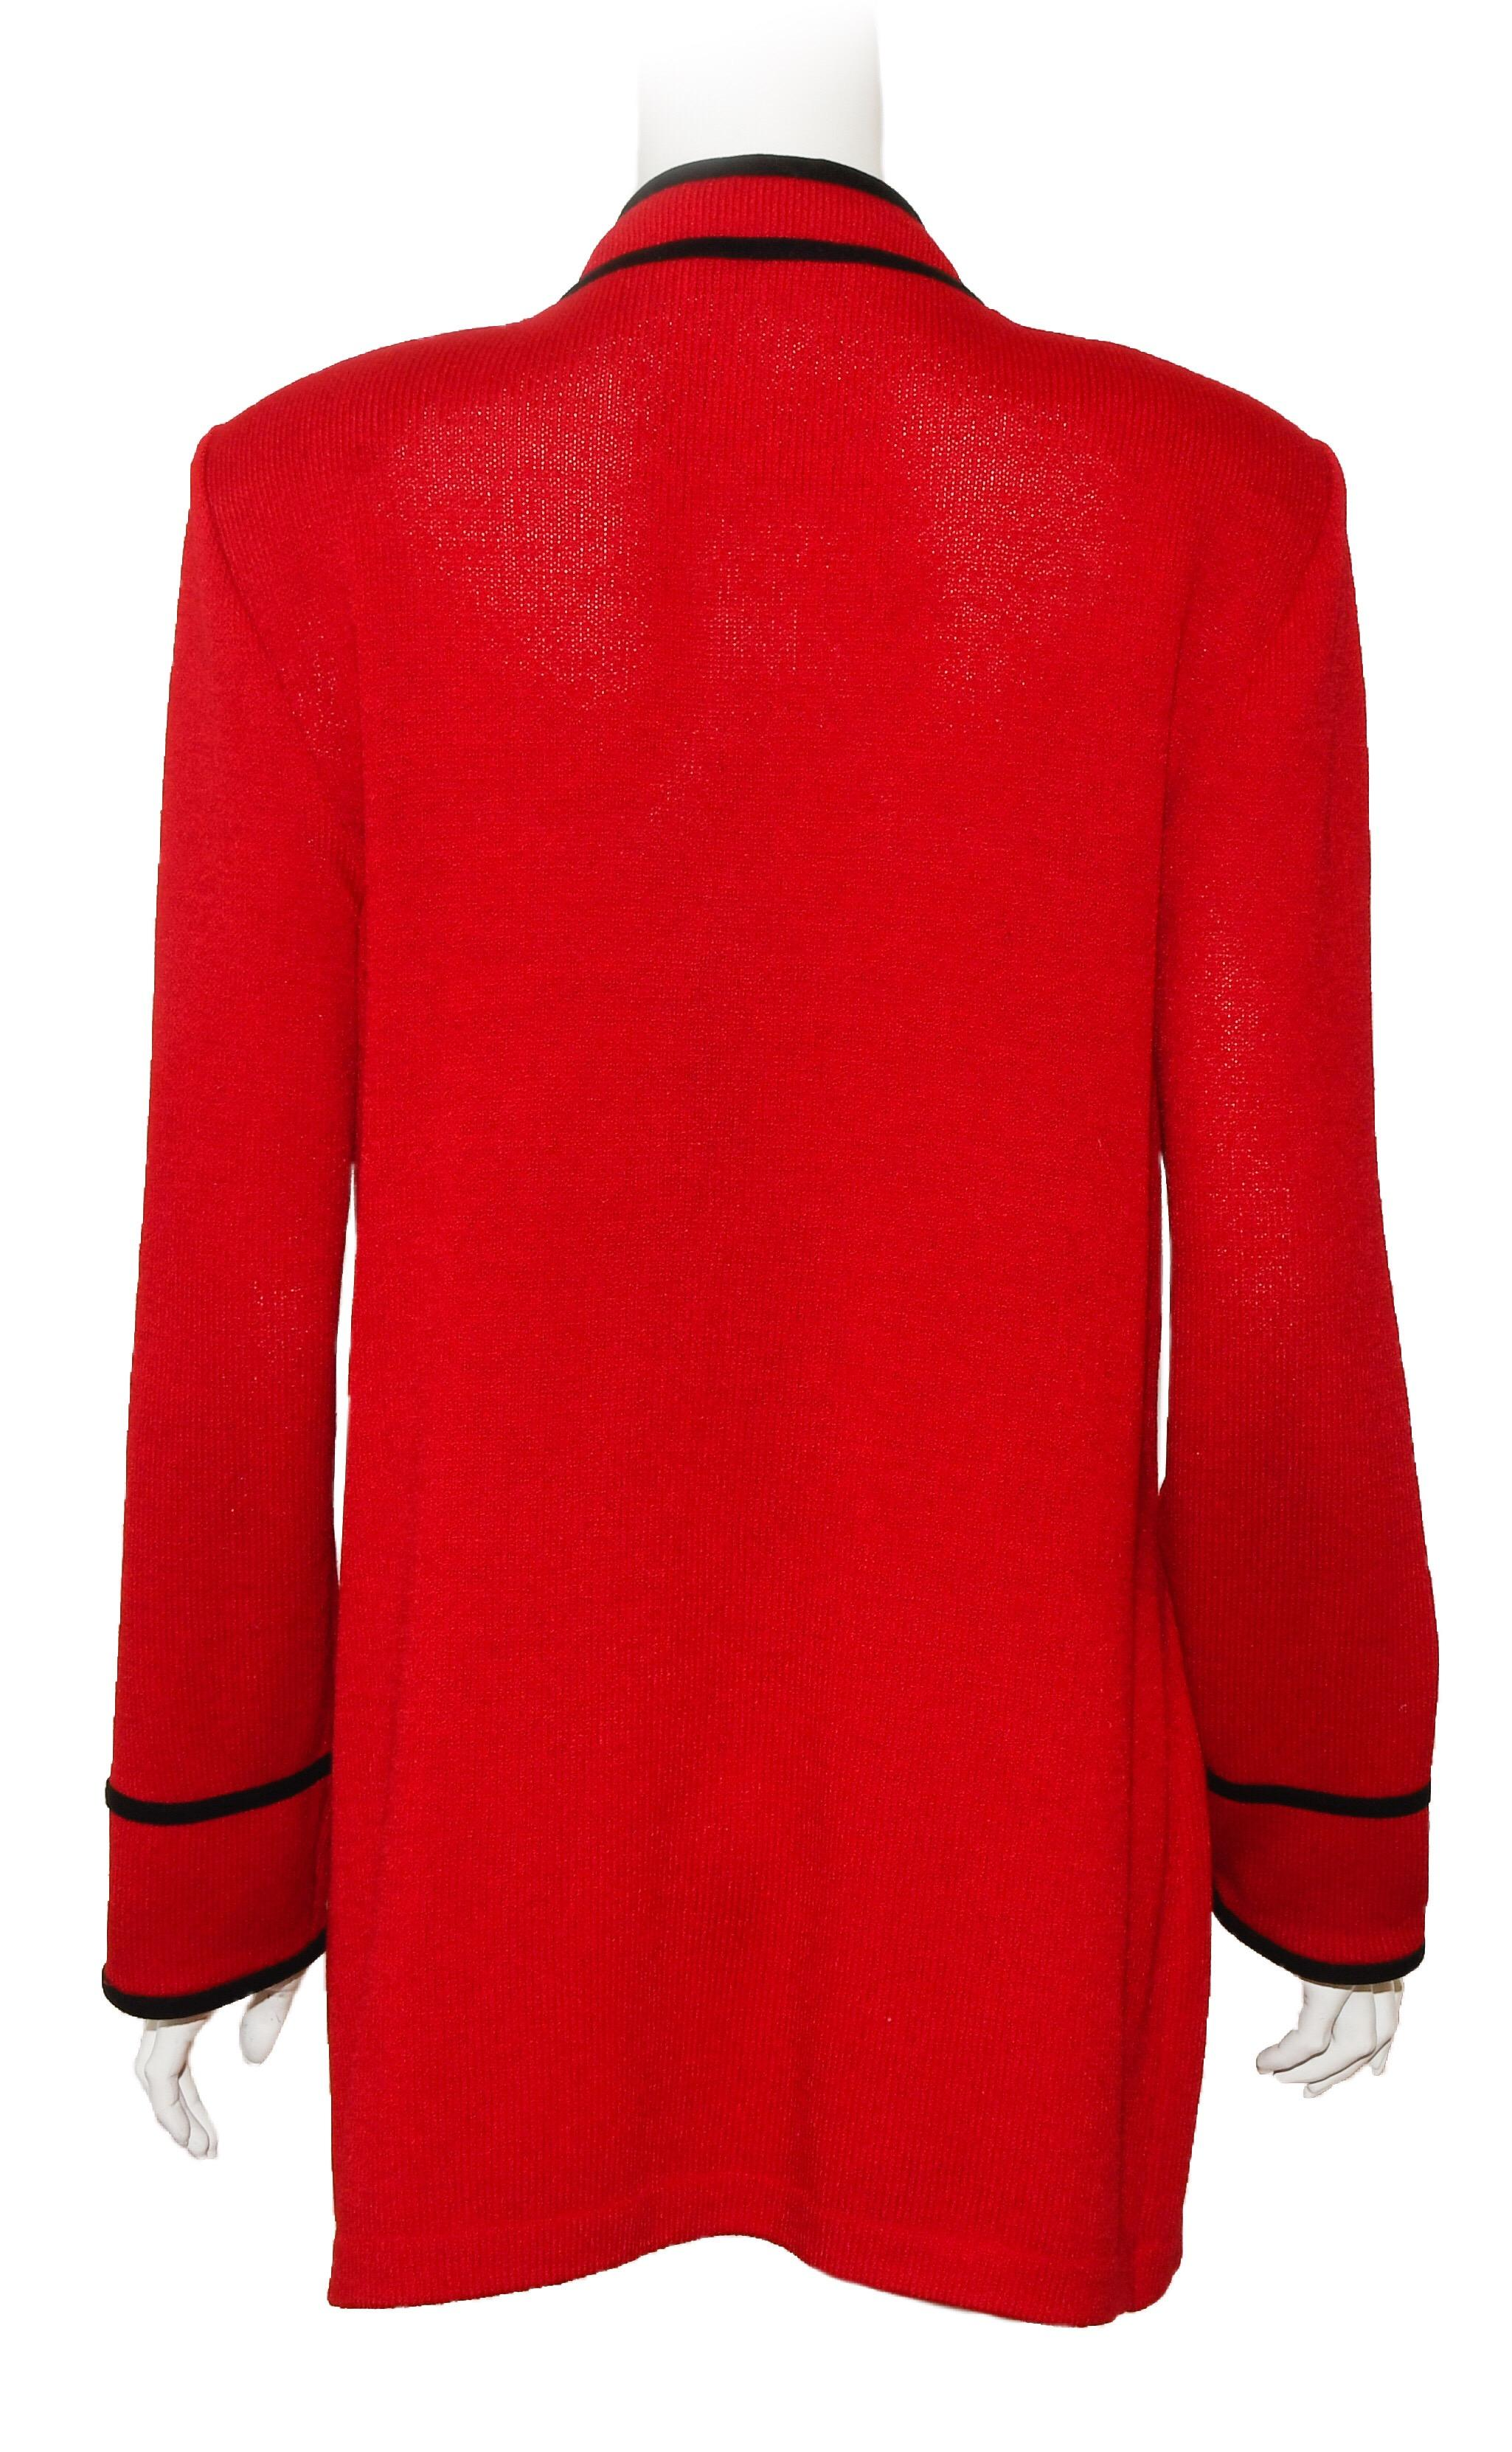 2ffebdd1a St. John Red Long Knit Jacket For Sale at 1stdibs